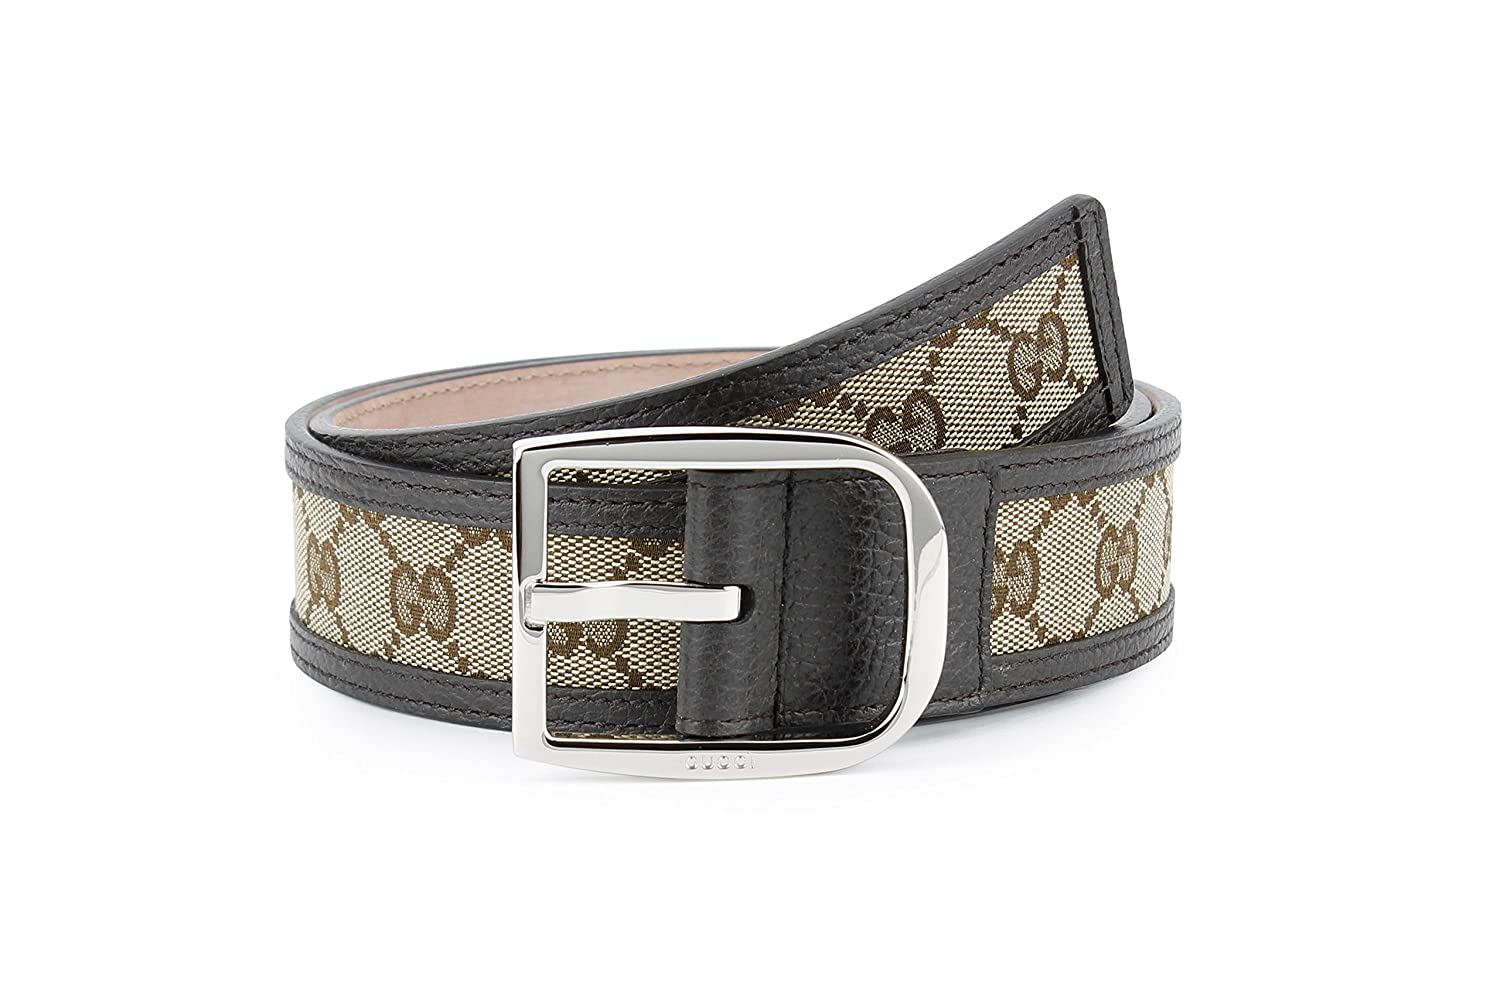 a00506a7bd1 Amazon.com  Gucci Original GG Canvas with Leather Belt